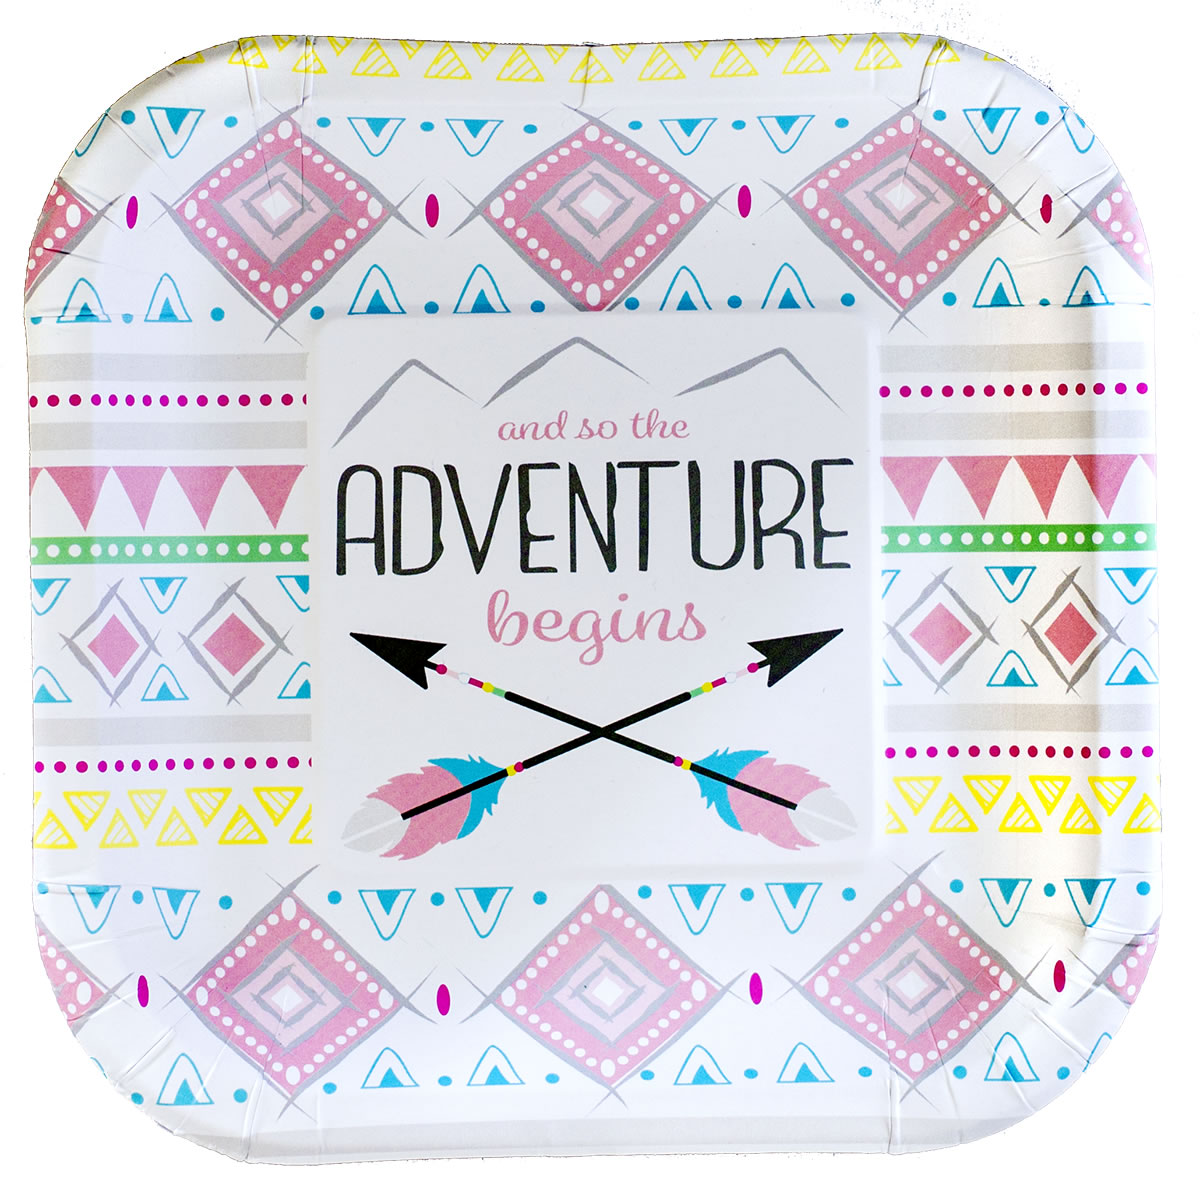 The Adventure Begins GIRL 7 inch Party Plate